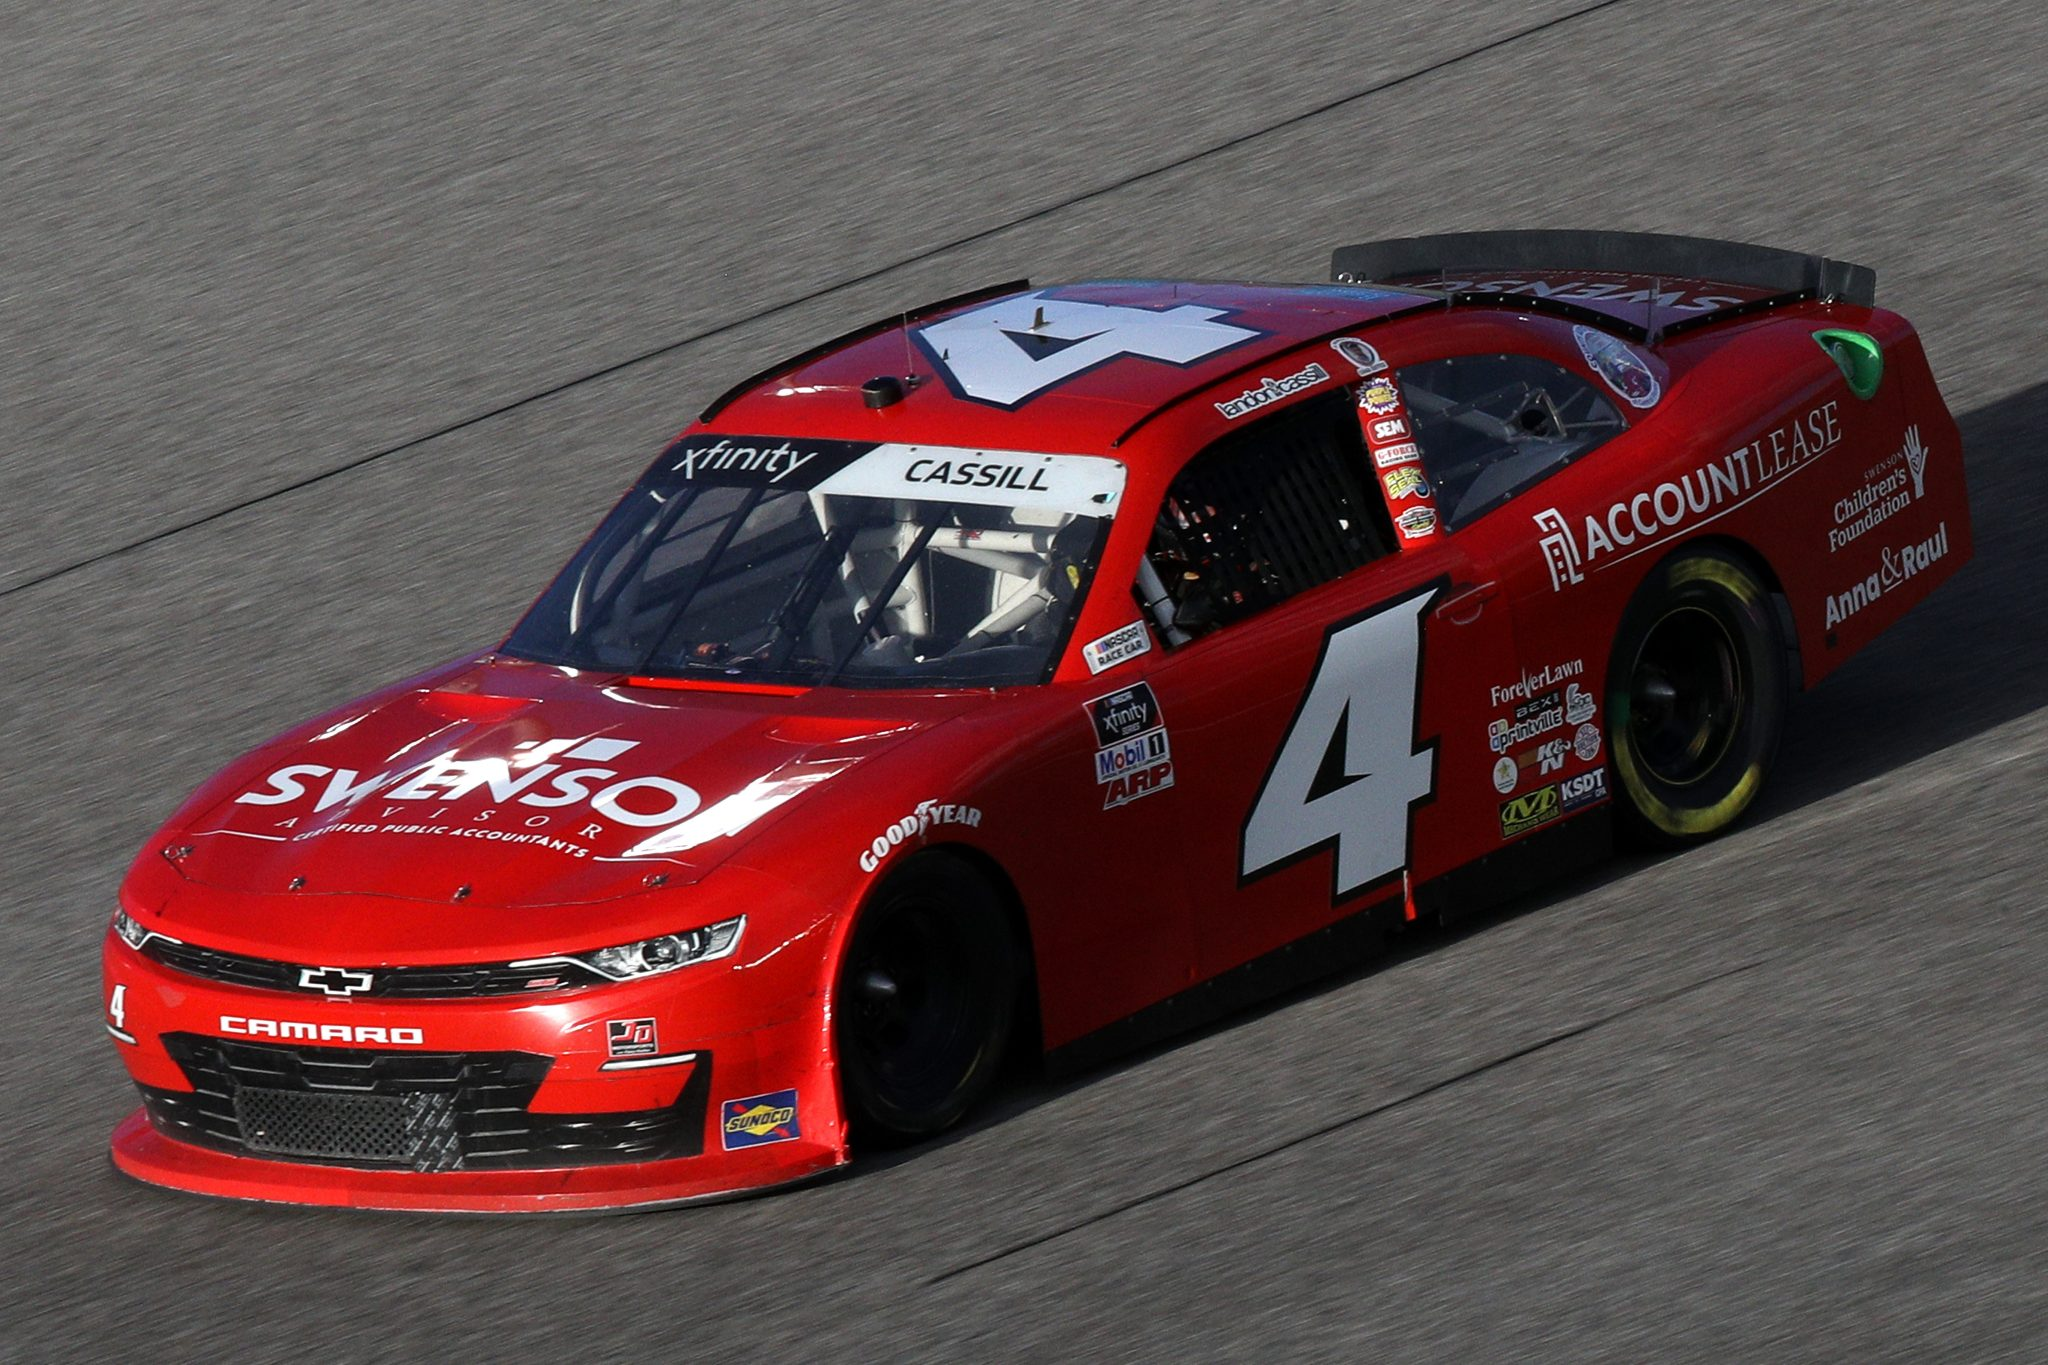 HOMESTEAD, FLORIDA - FEBRUARY 27: Landon Cassill, driver of the #4 TeamJDMotorsports.com Chevrolet, drives during the NASCAR Xfinity Series Contender Boats 250 at Homestead-Miami Speedway on February 27, 2021 in Homestead, Florida. (Photo by Sean Gardner/Getty Images) | Getty Images